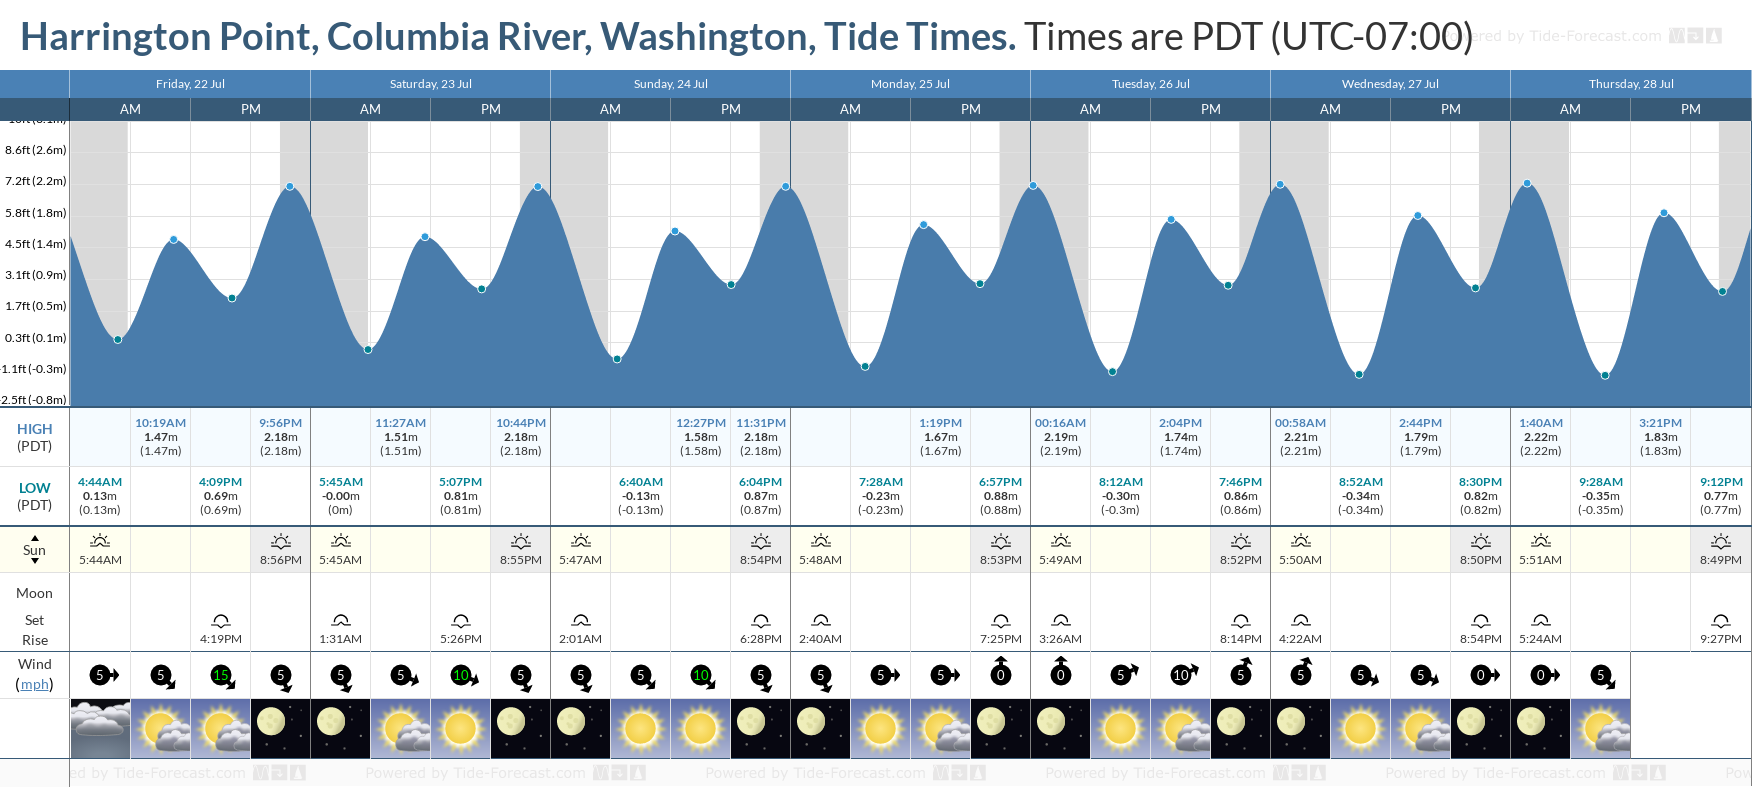 Harrington Point, Columbia River, Washington Tide Chart including high and low tide tide times for the next 7 days